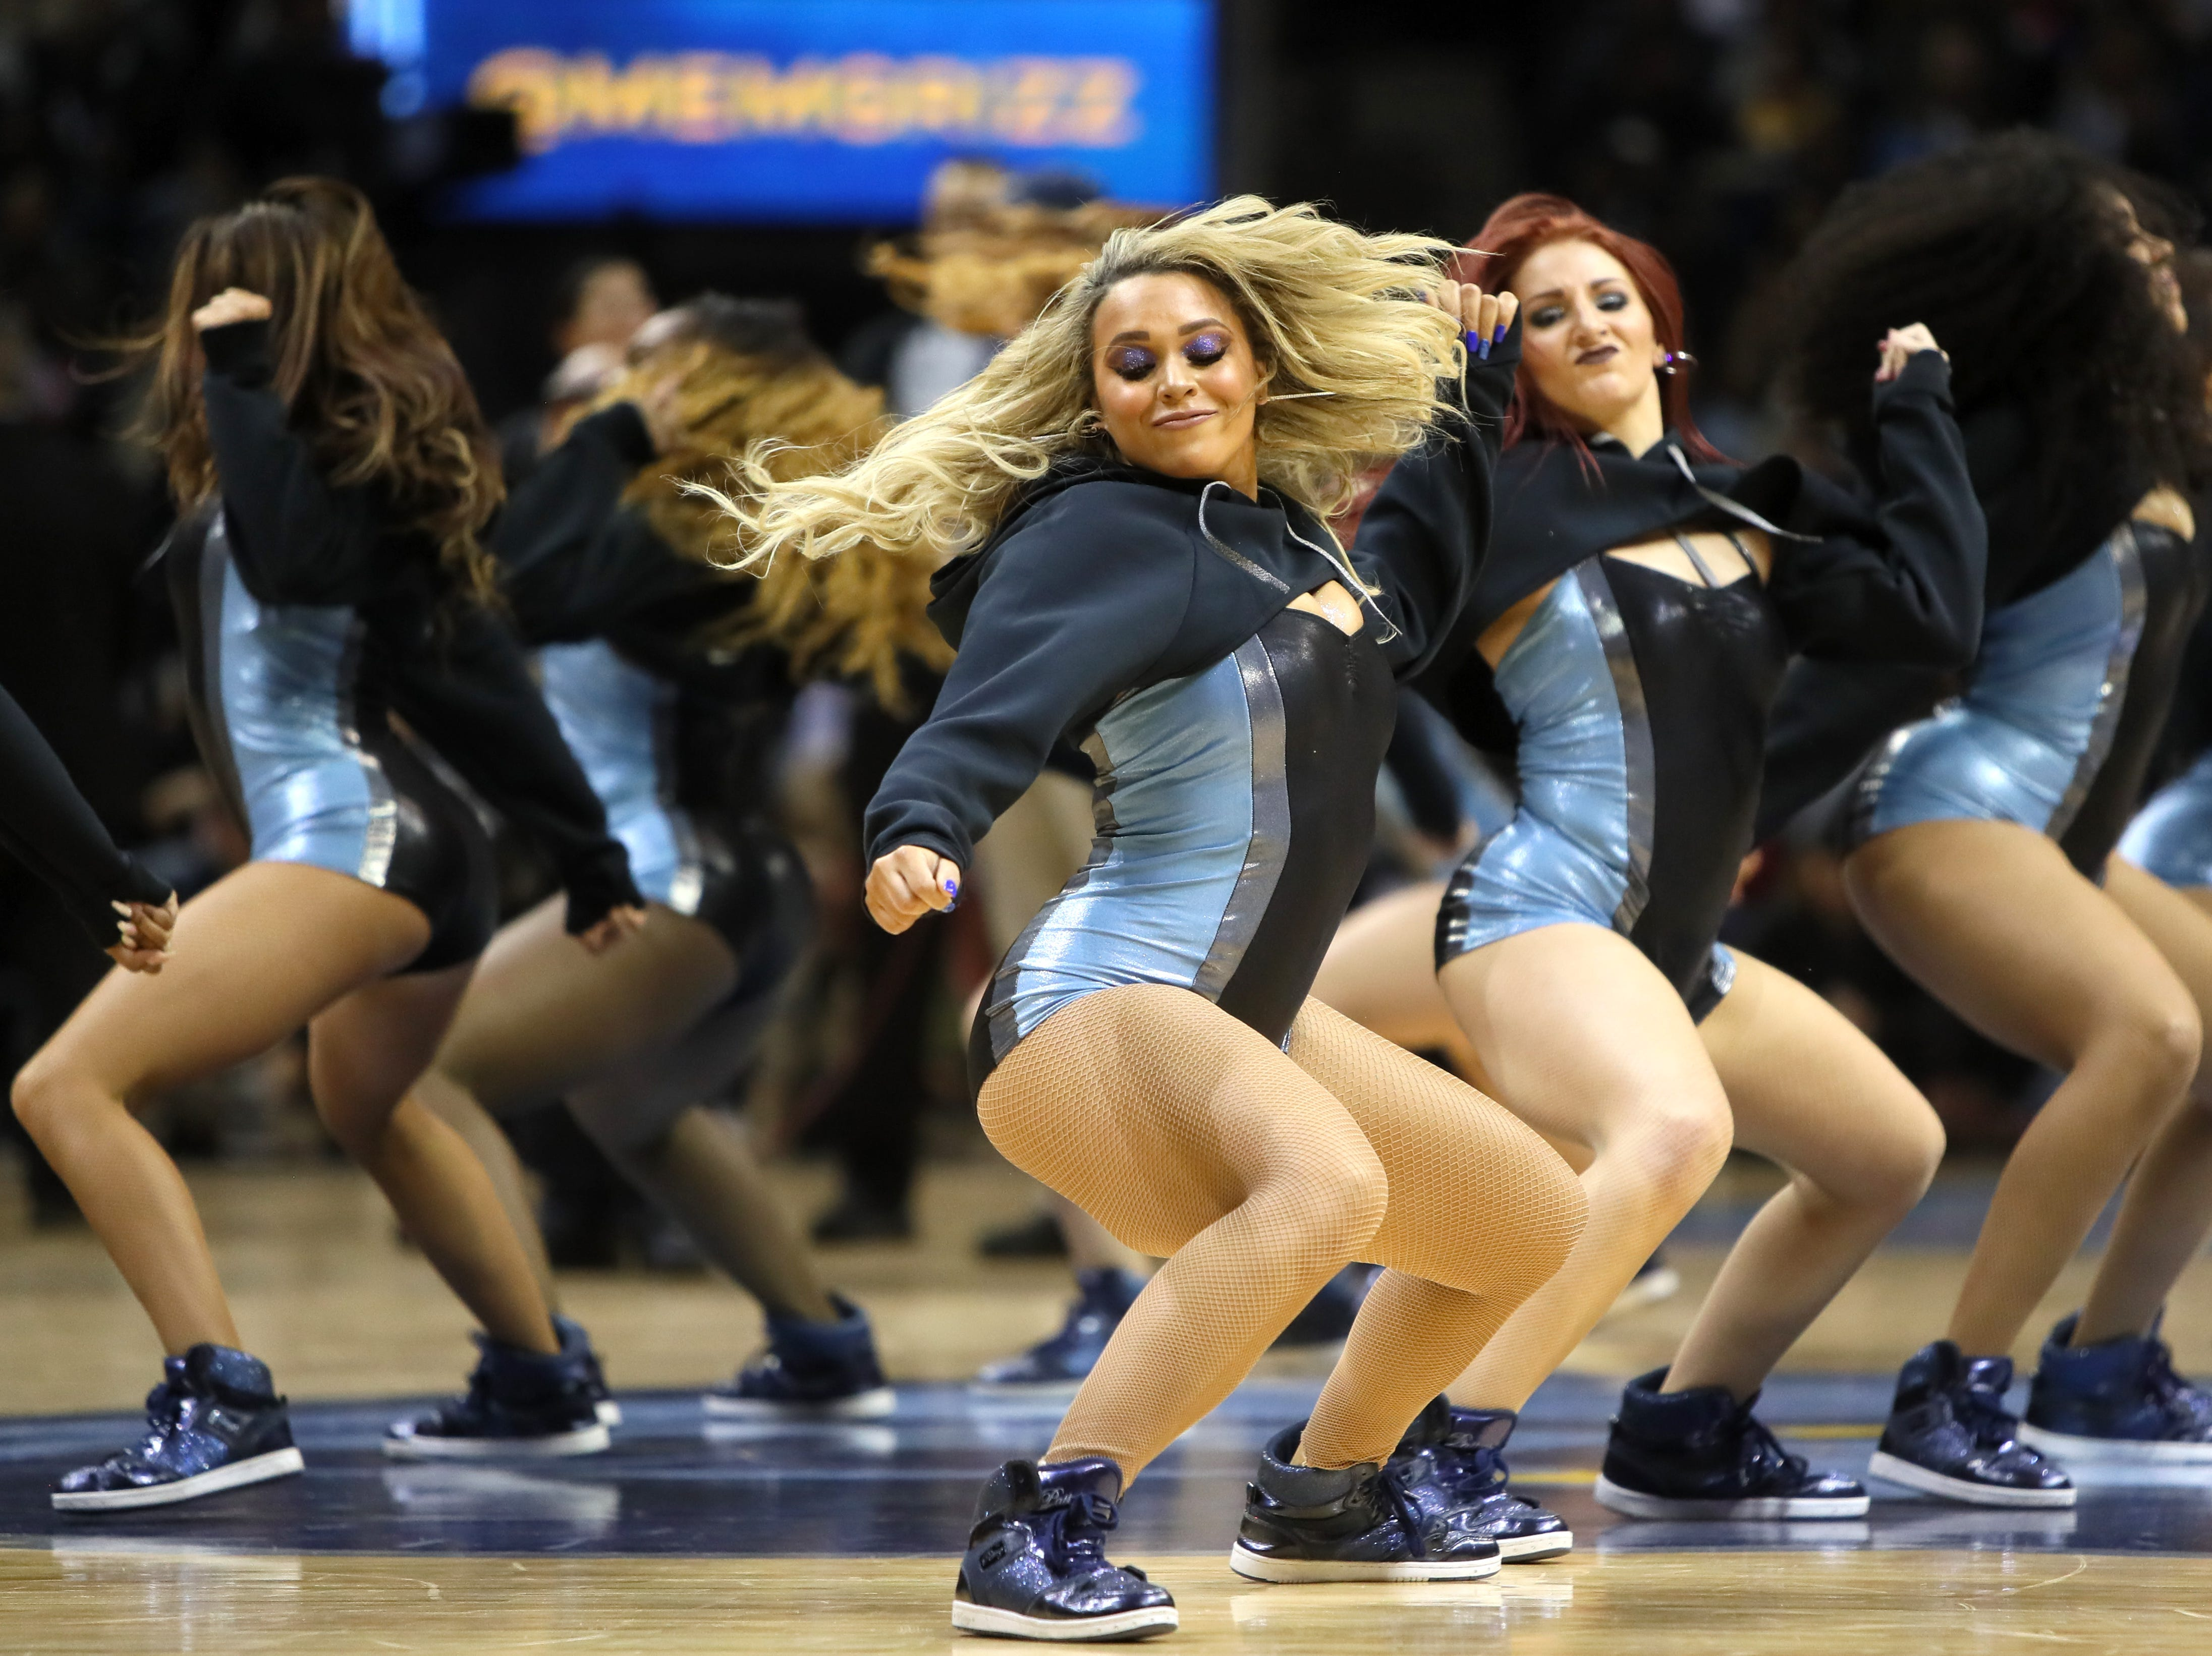 Memphis Grizzlies Grizz Girls peform during a timeout in their game against the Los Angeles Lakers at the FedExForum on Saturday, Dec. 8, 2018.